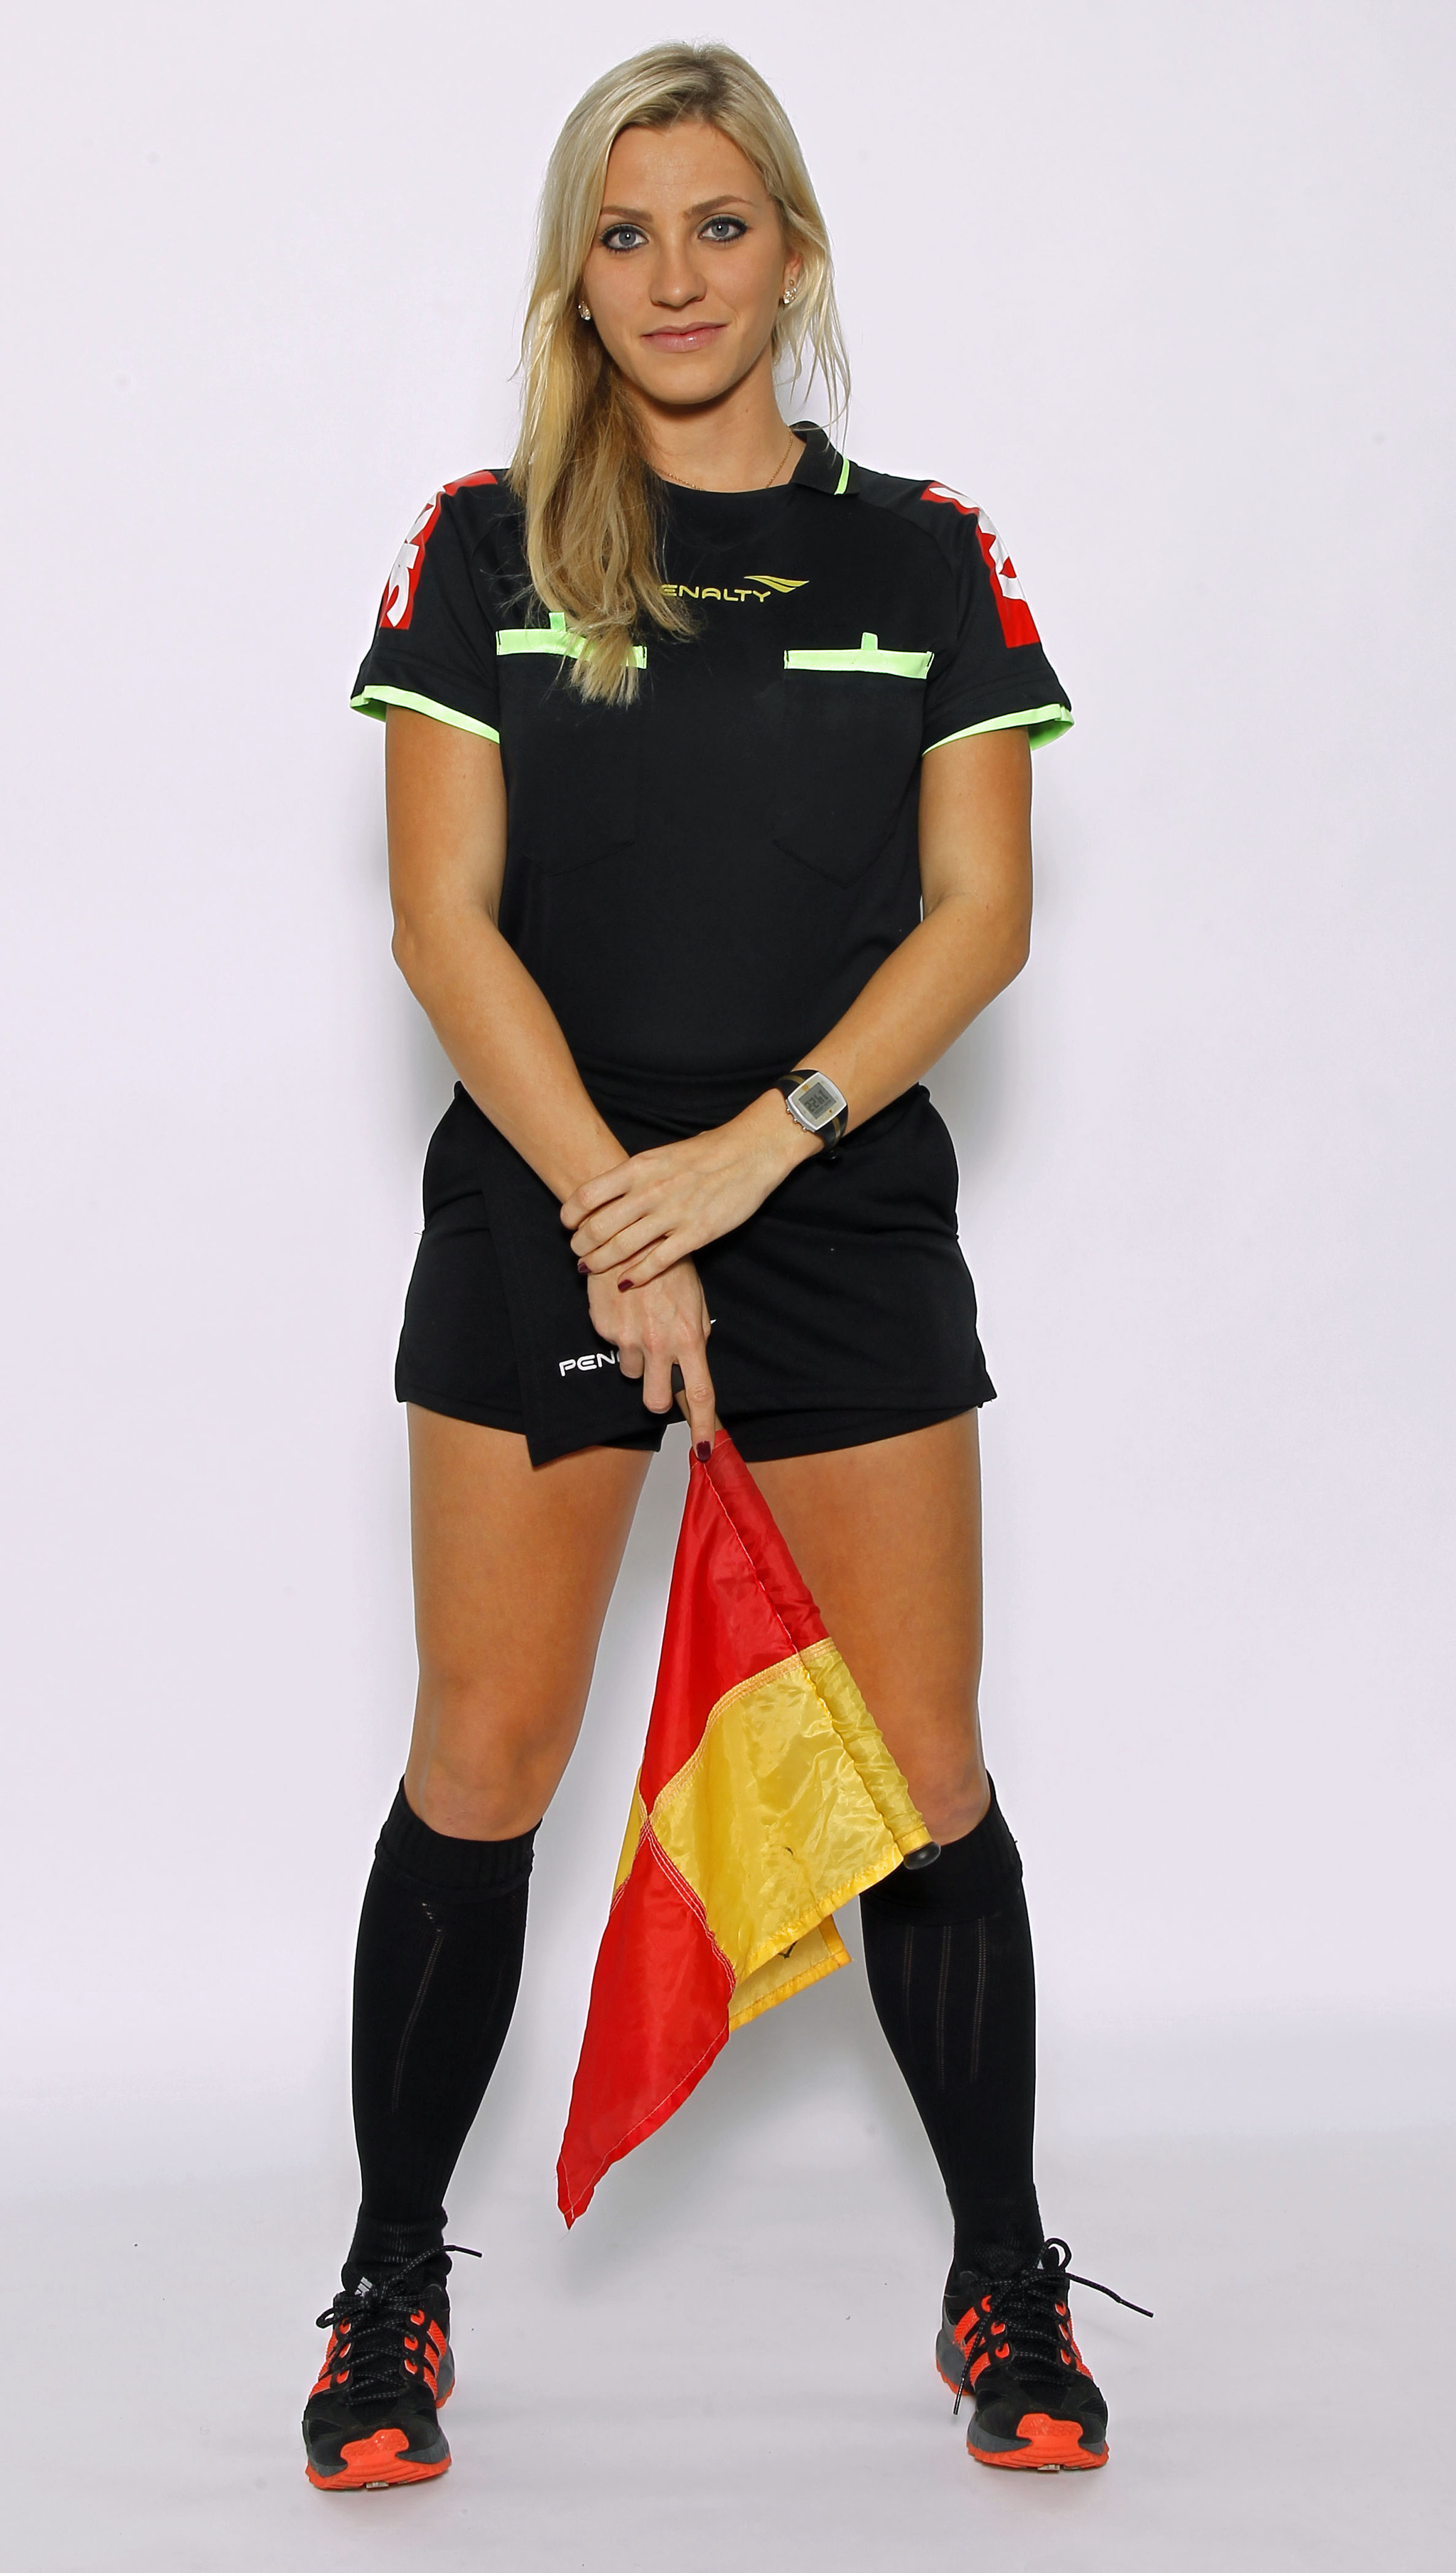 Image result for fernanda colombo referee